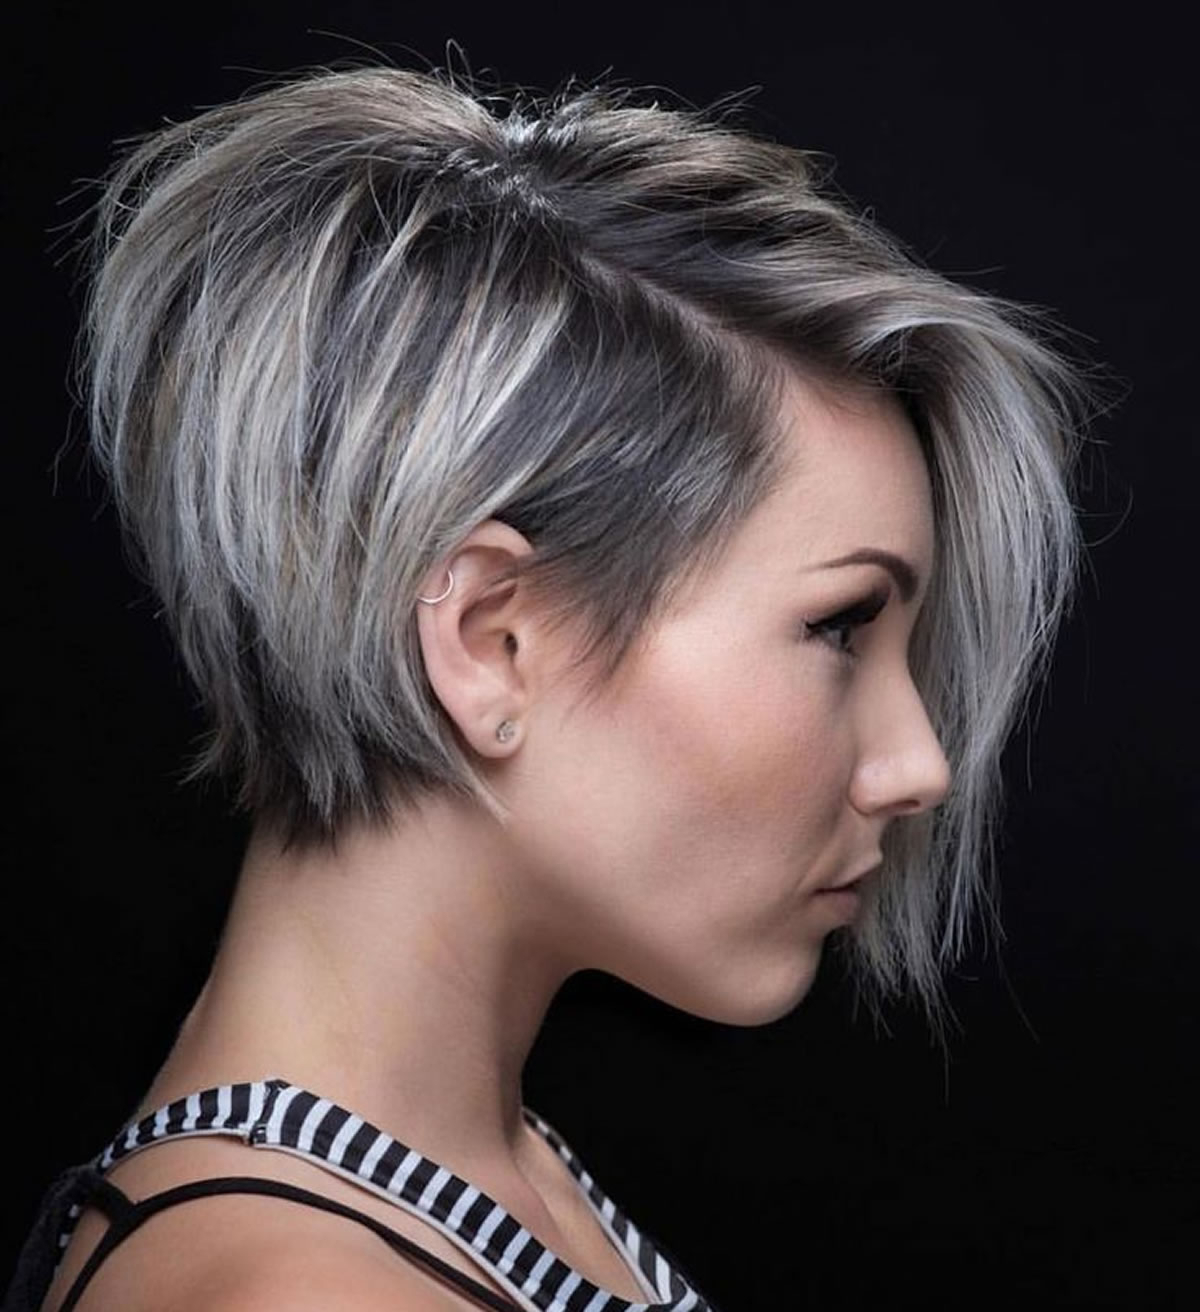 30 Best Asymmetric Short Haircuts For Women Of All Time – Hairstyles In Symmetrical Short Haircuts (View 8 of 25)